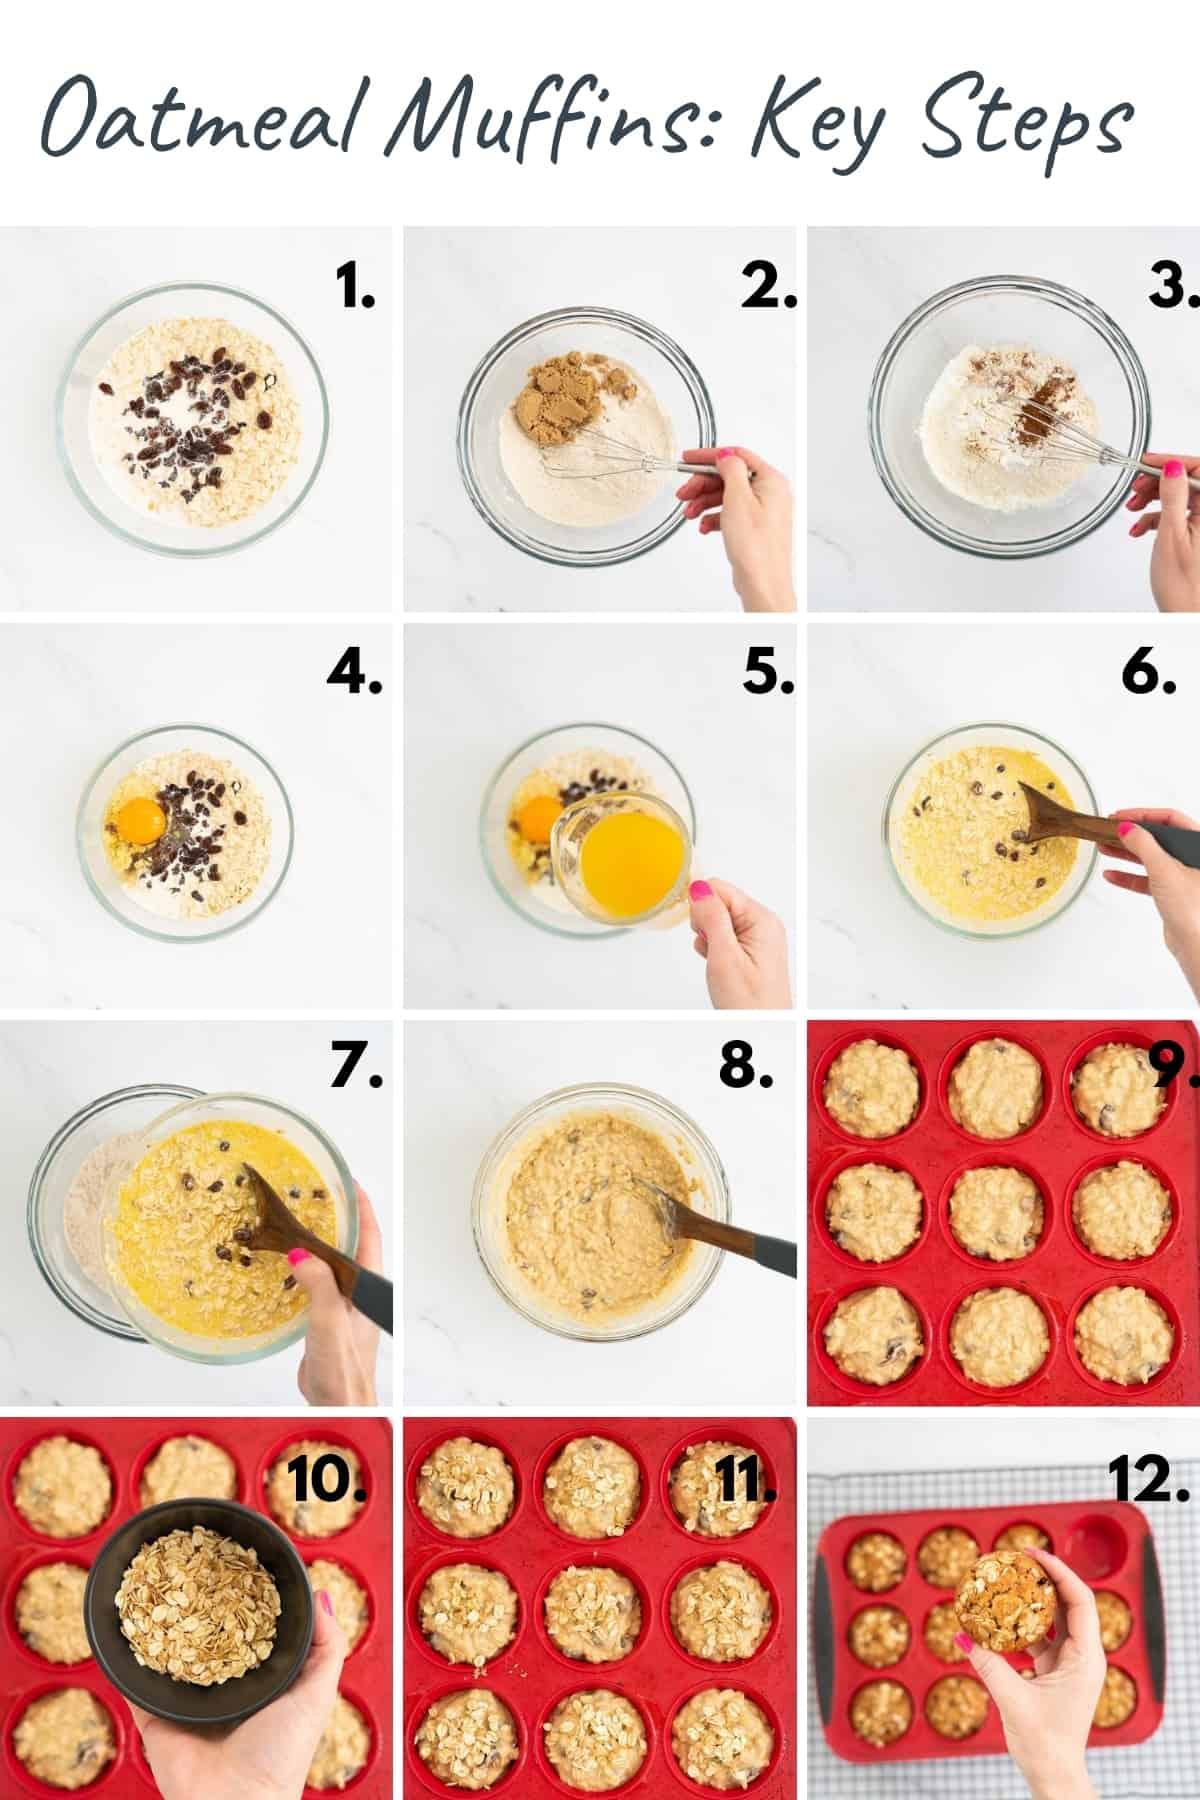 12 photo collage showing the process of making oatmeal muffins